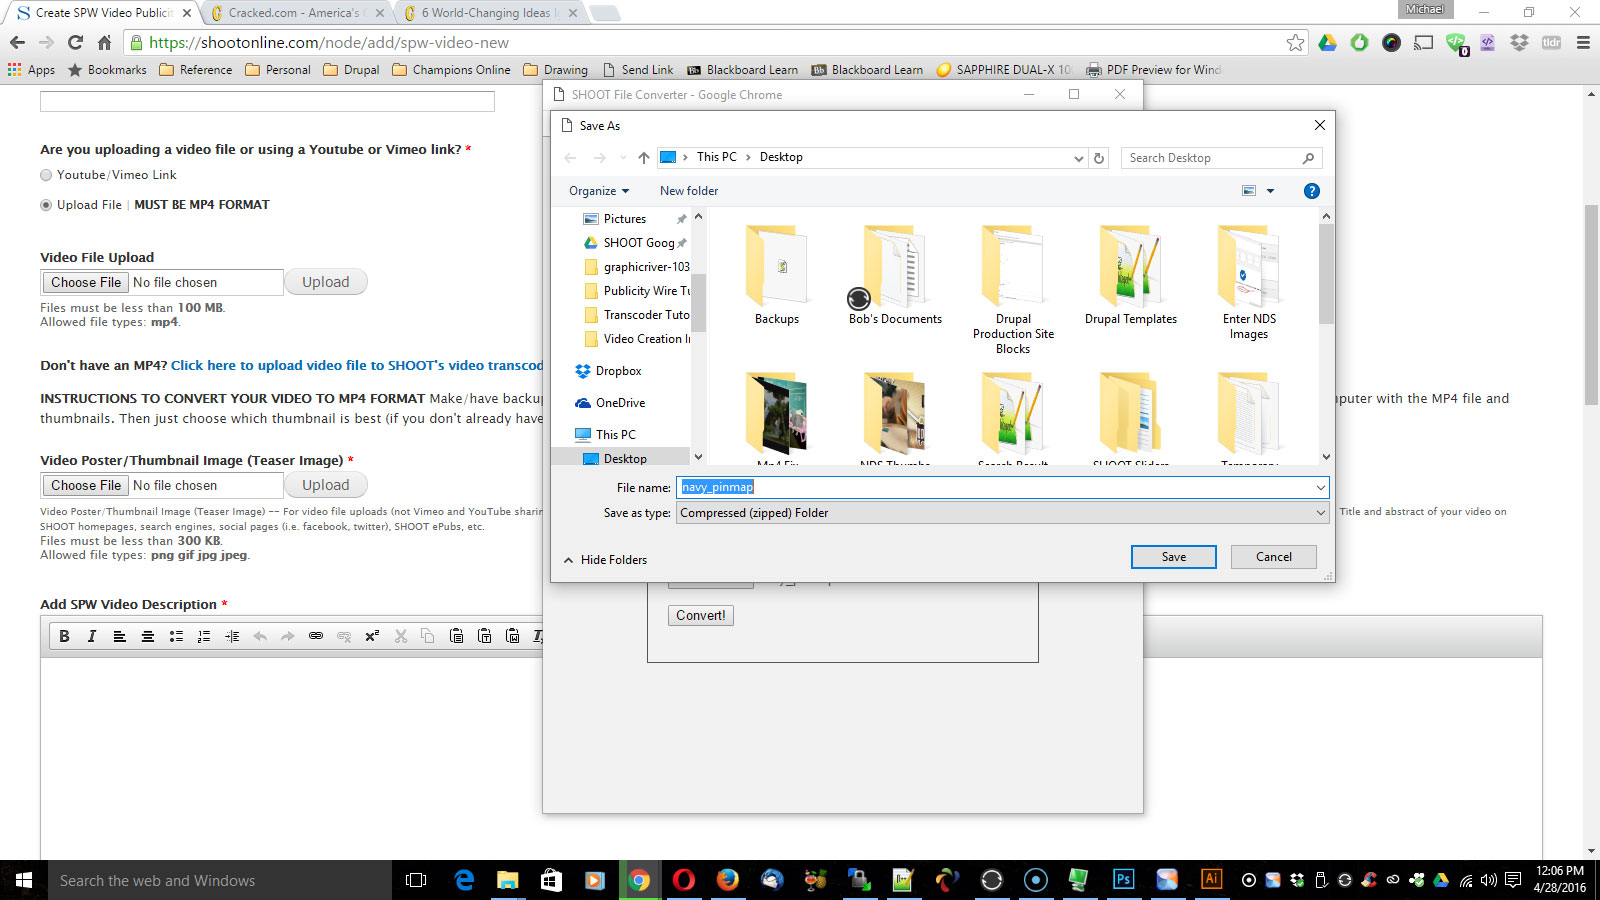 My video file is not an MP4 file type, how do I use the SHOOT